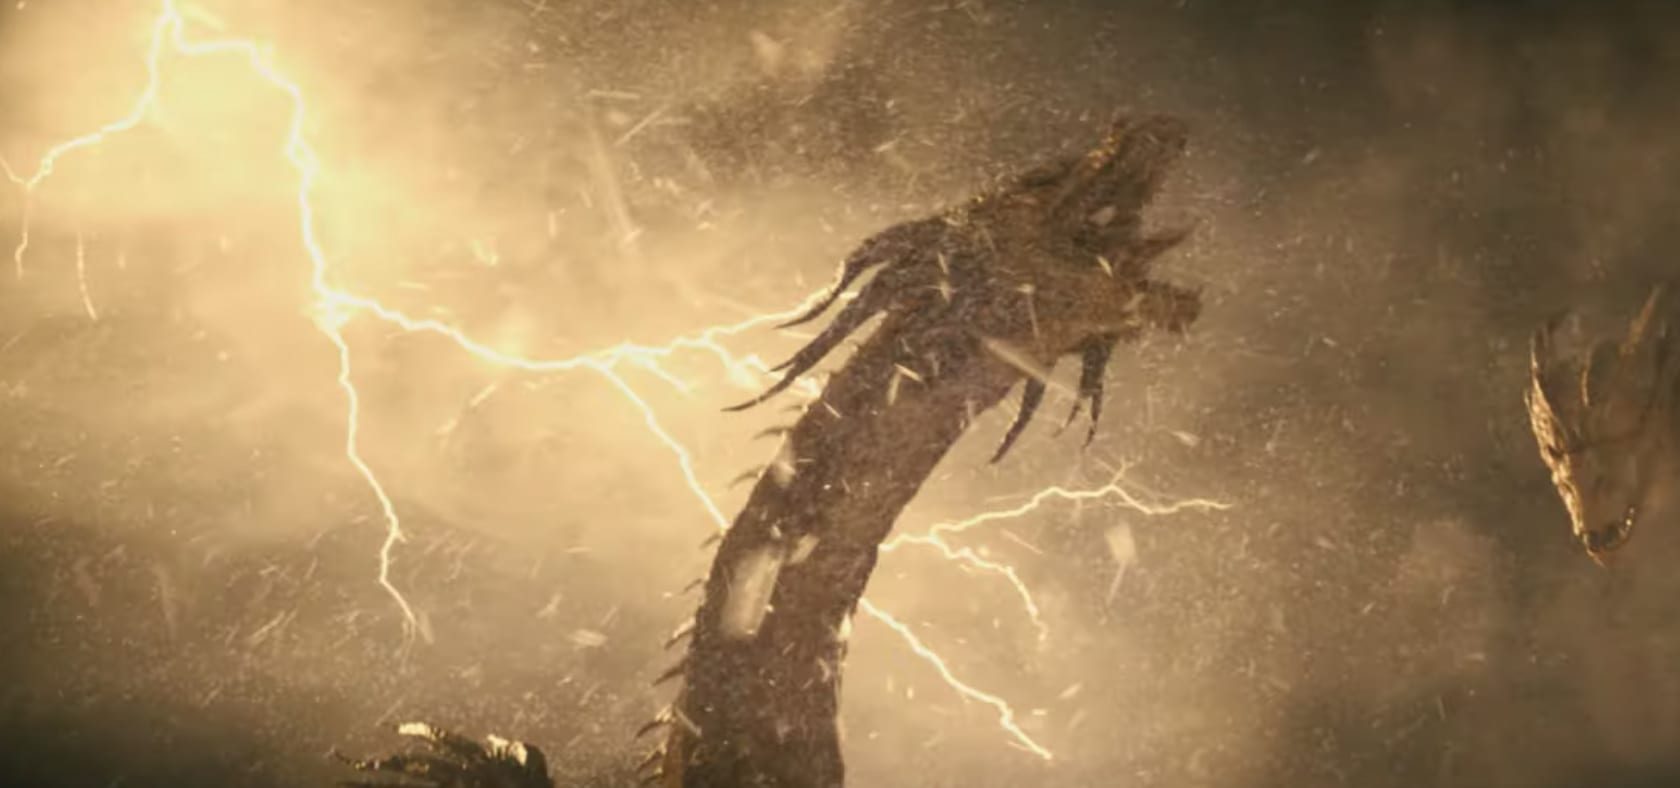 Here's the Final 'Godzilla: King of the Monsters' Trailer